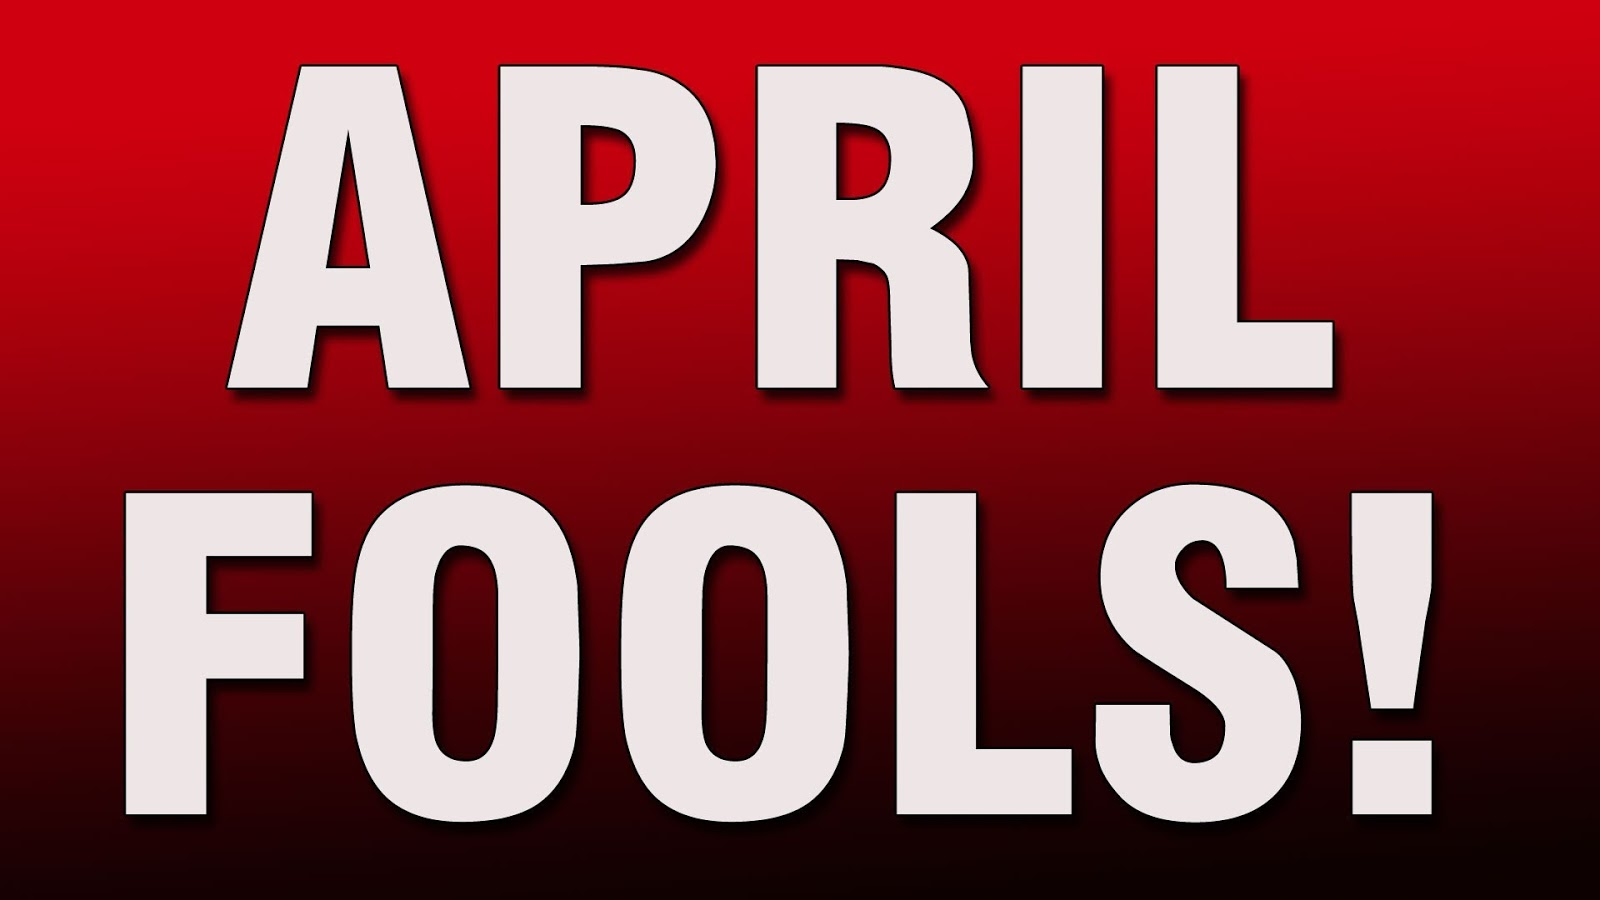 april fools April fools' day: april fools' day, in most countries the first day of april it received its name from the custom of playing practical jokes on this day—for example, telling friends that their shoelaces are untied or sending them on so-called fools' errands.